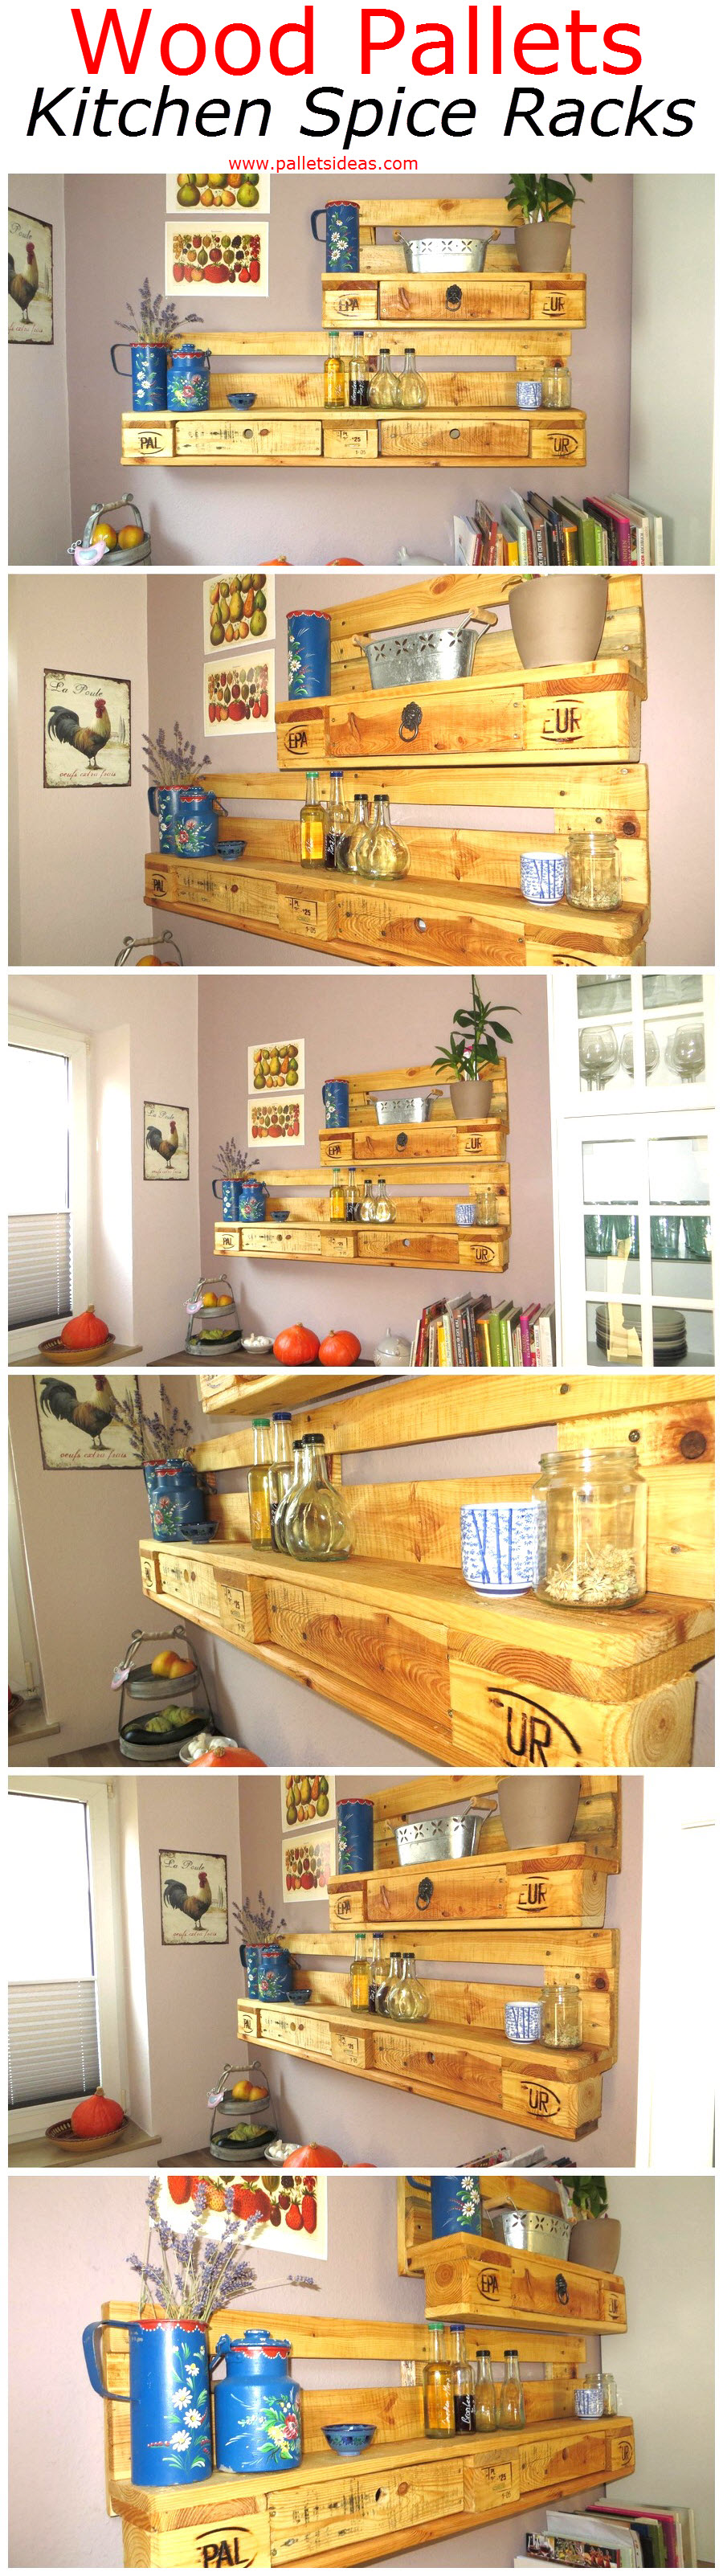 wood-pallets-kitchen-spice-racks